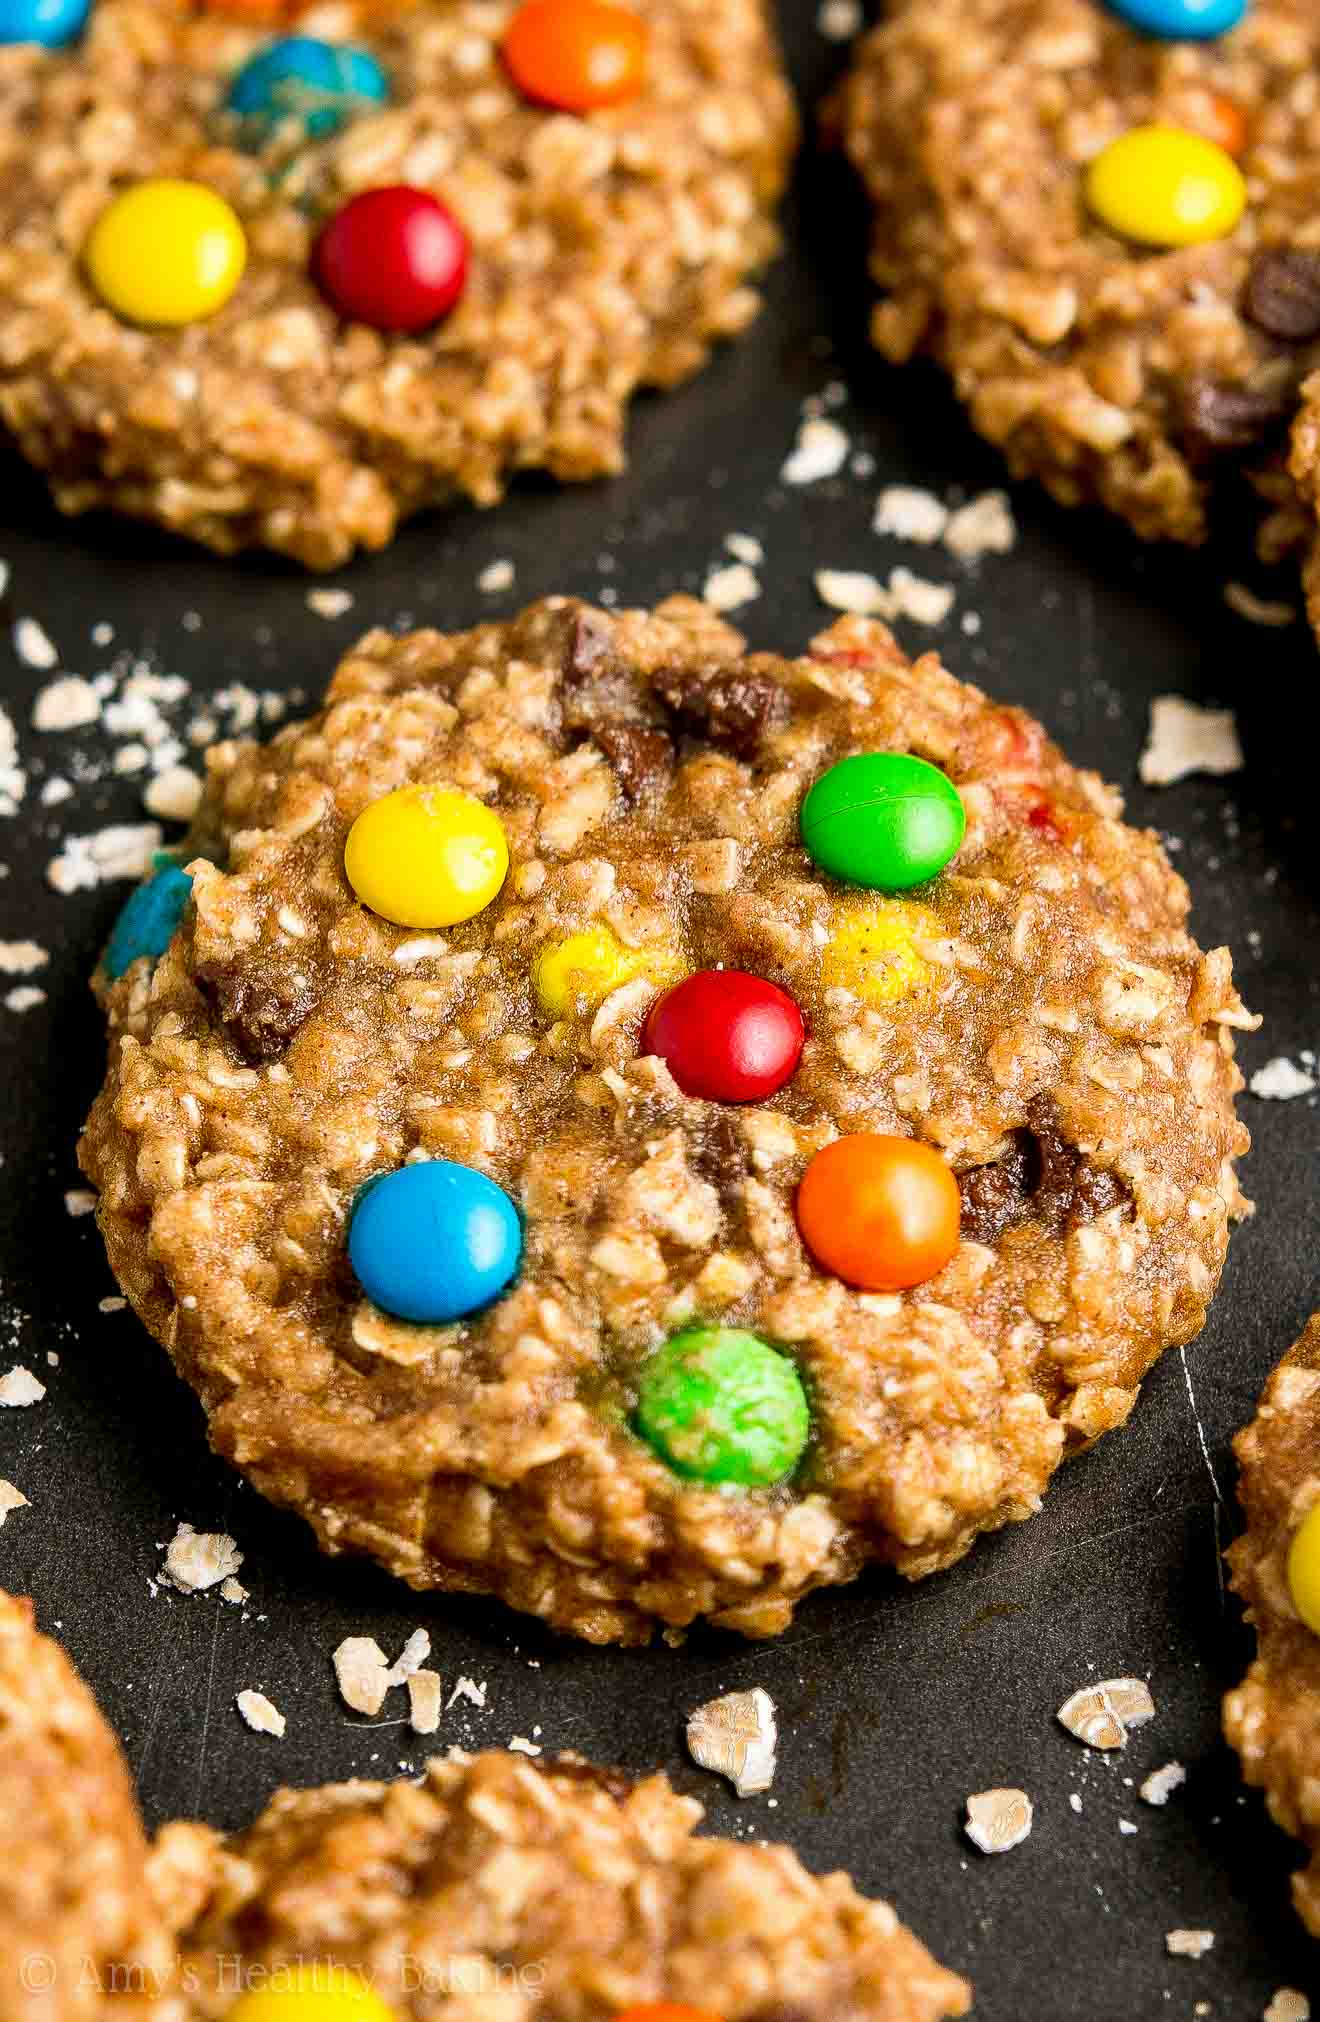 Healthy Vegan Chocolate Chip Peanut Butter Oatmeal Cookies with M&Ms